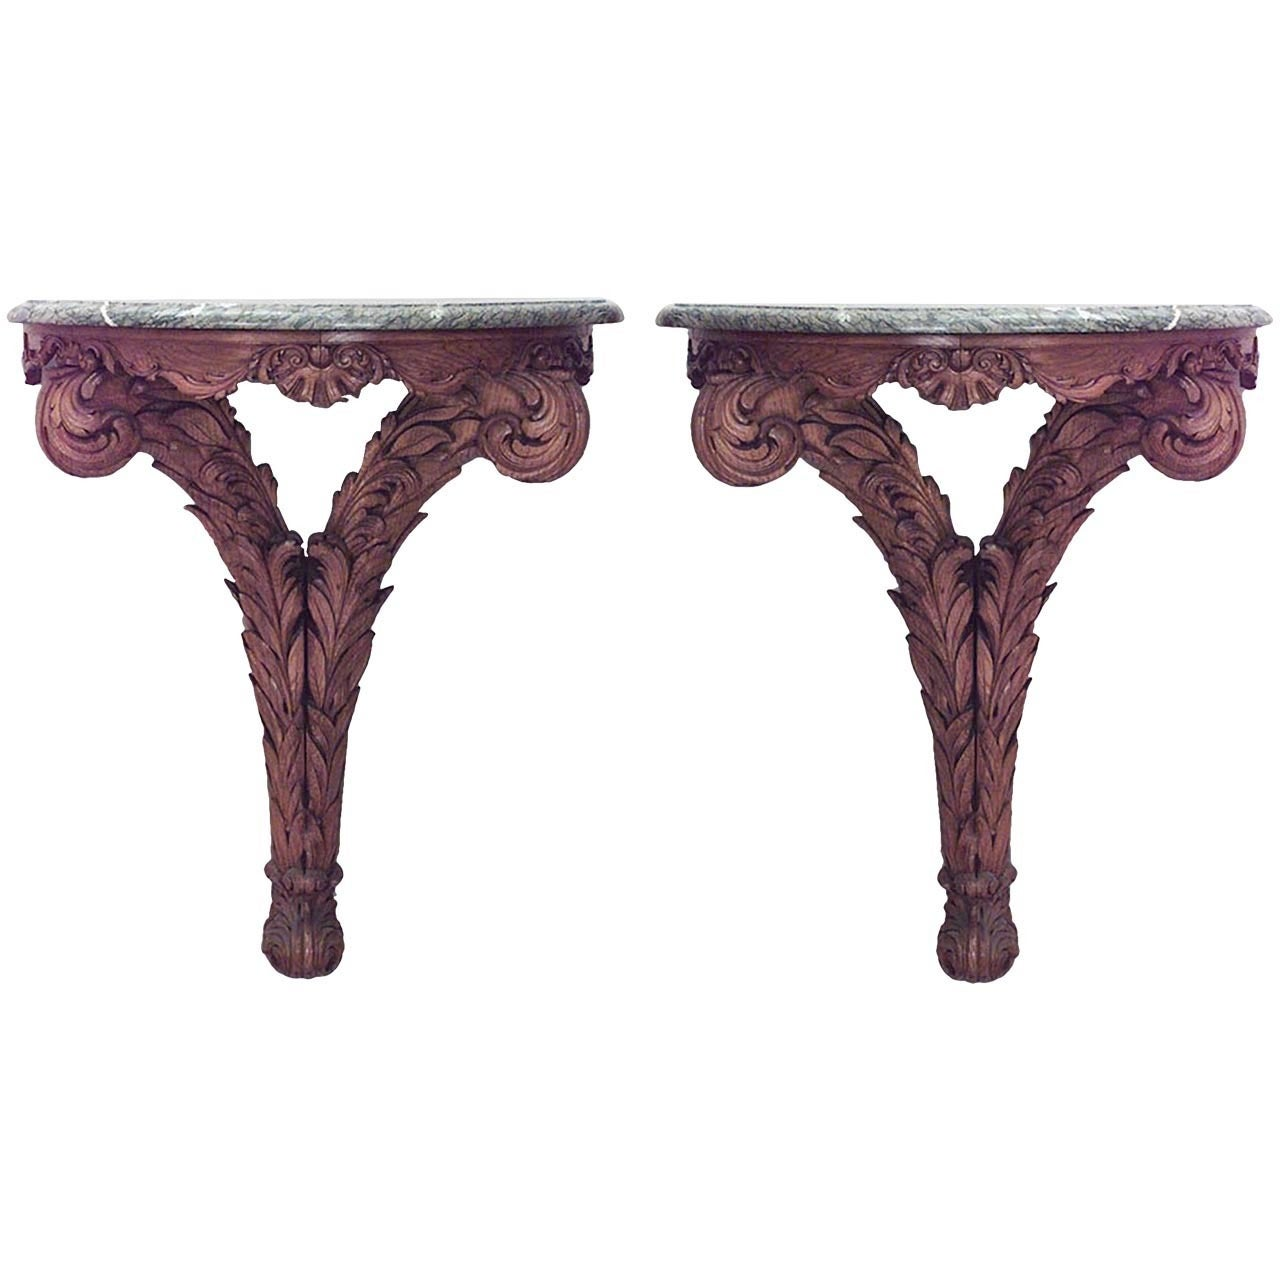 Pair of 19th c. Italian Neoclassical Marble Top Bracket Consoles